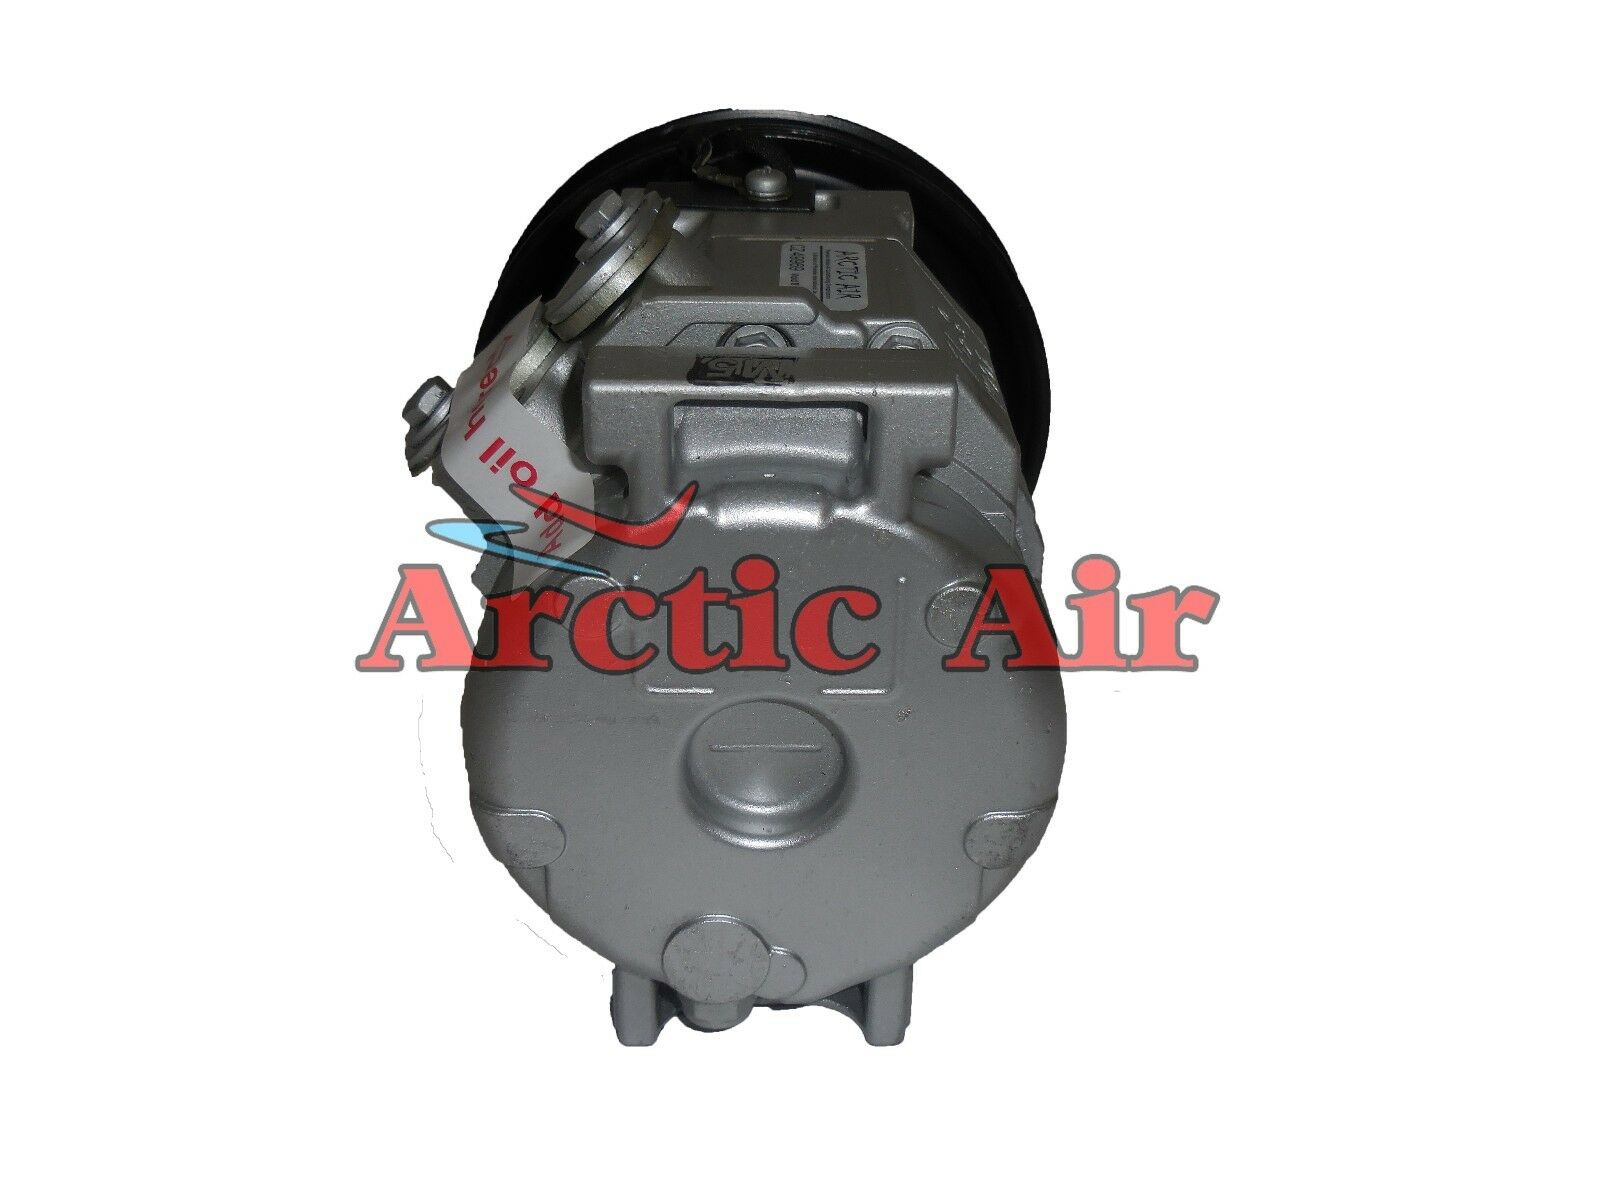 New 77391 1 Year Warranty AC Compressor Fits 2003-2008 Corolla Matrix